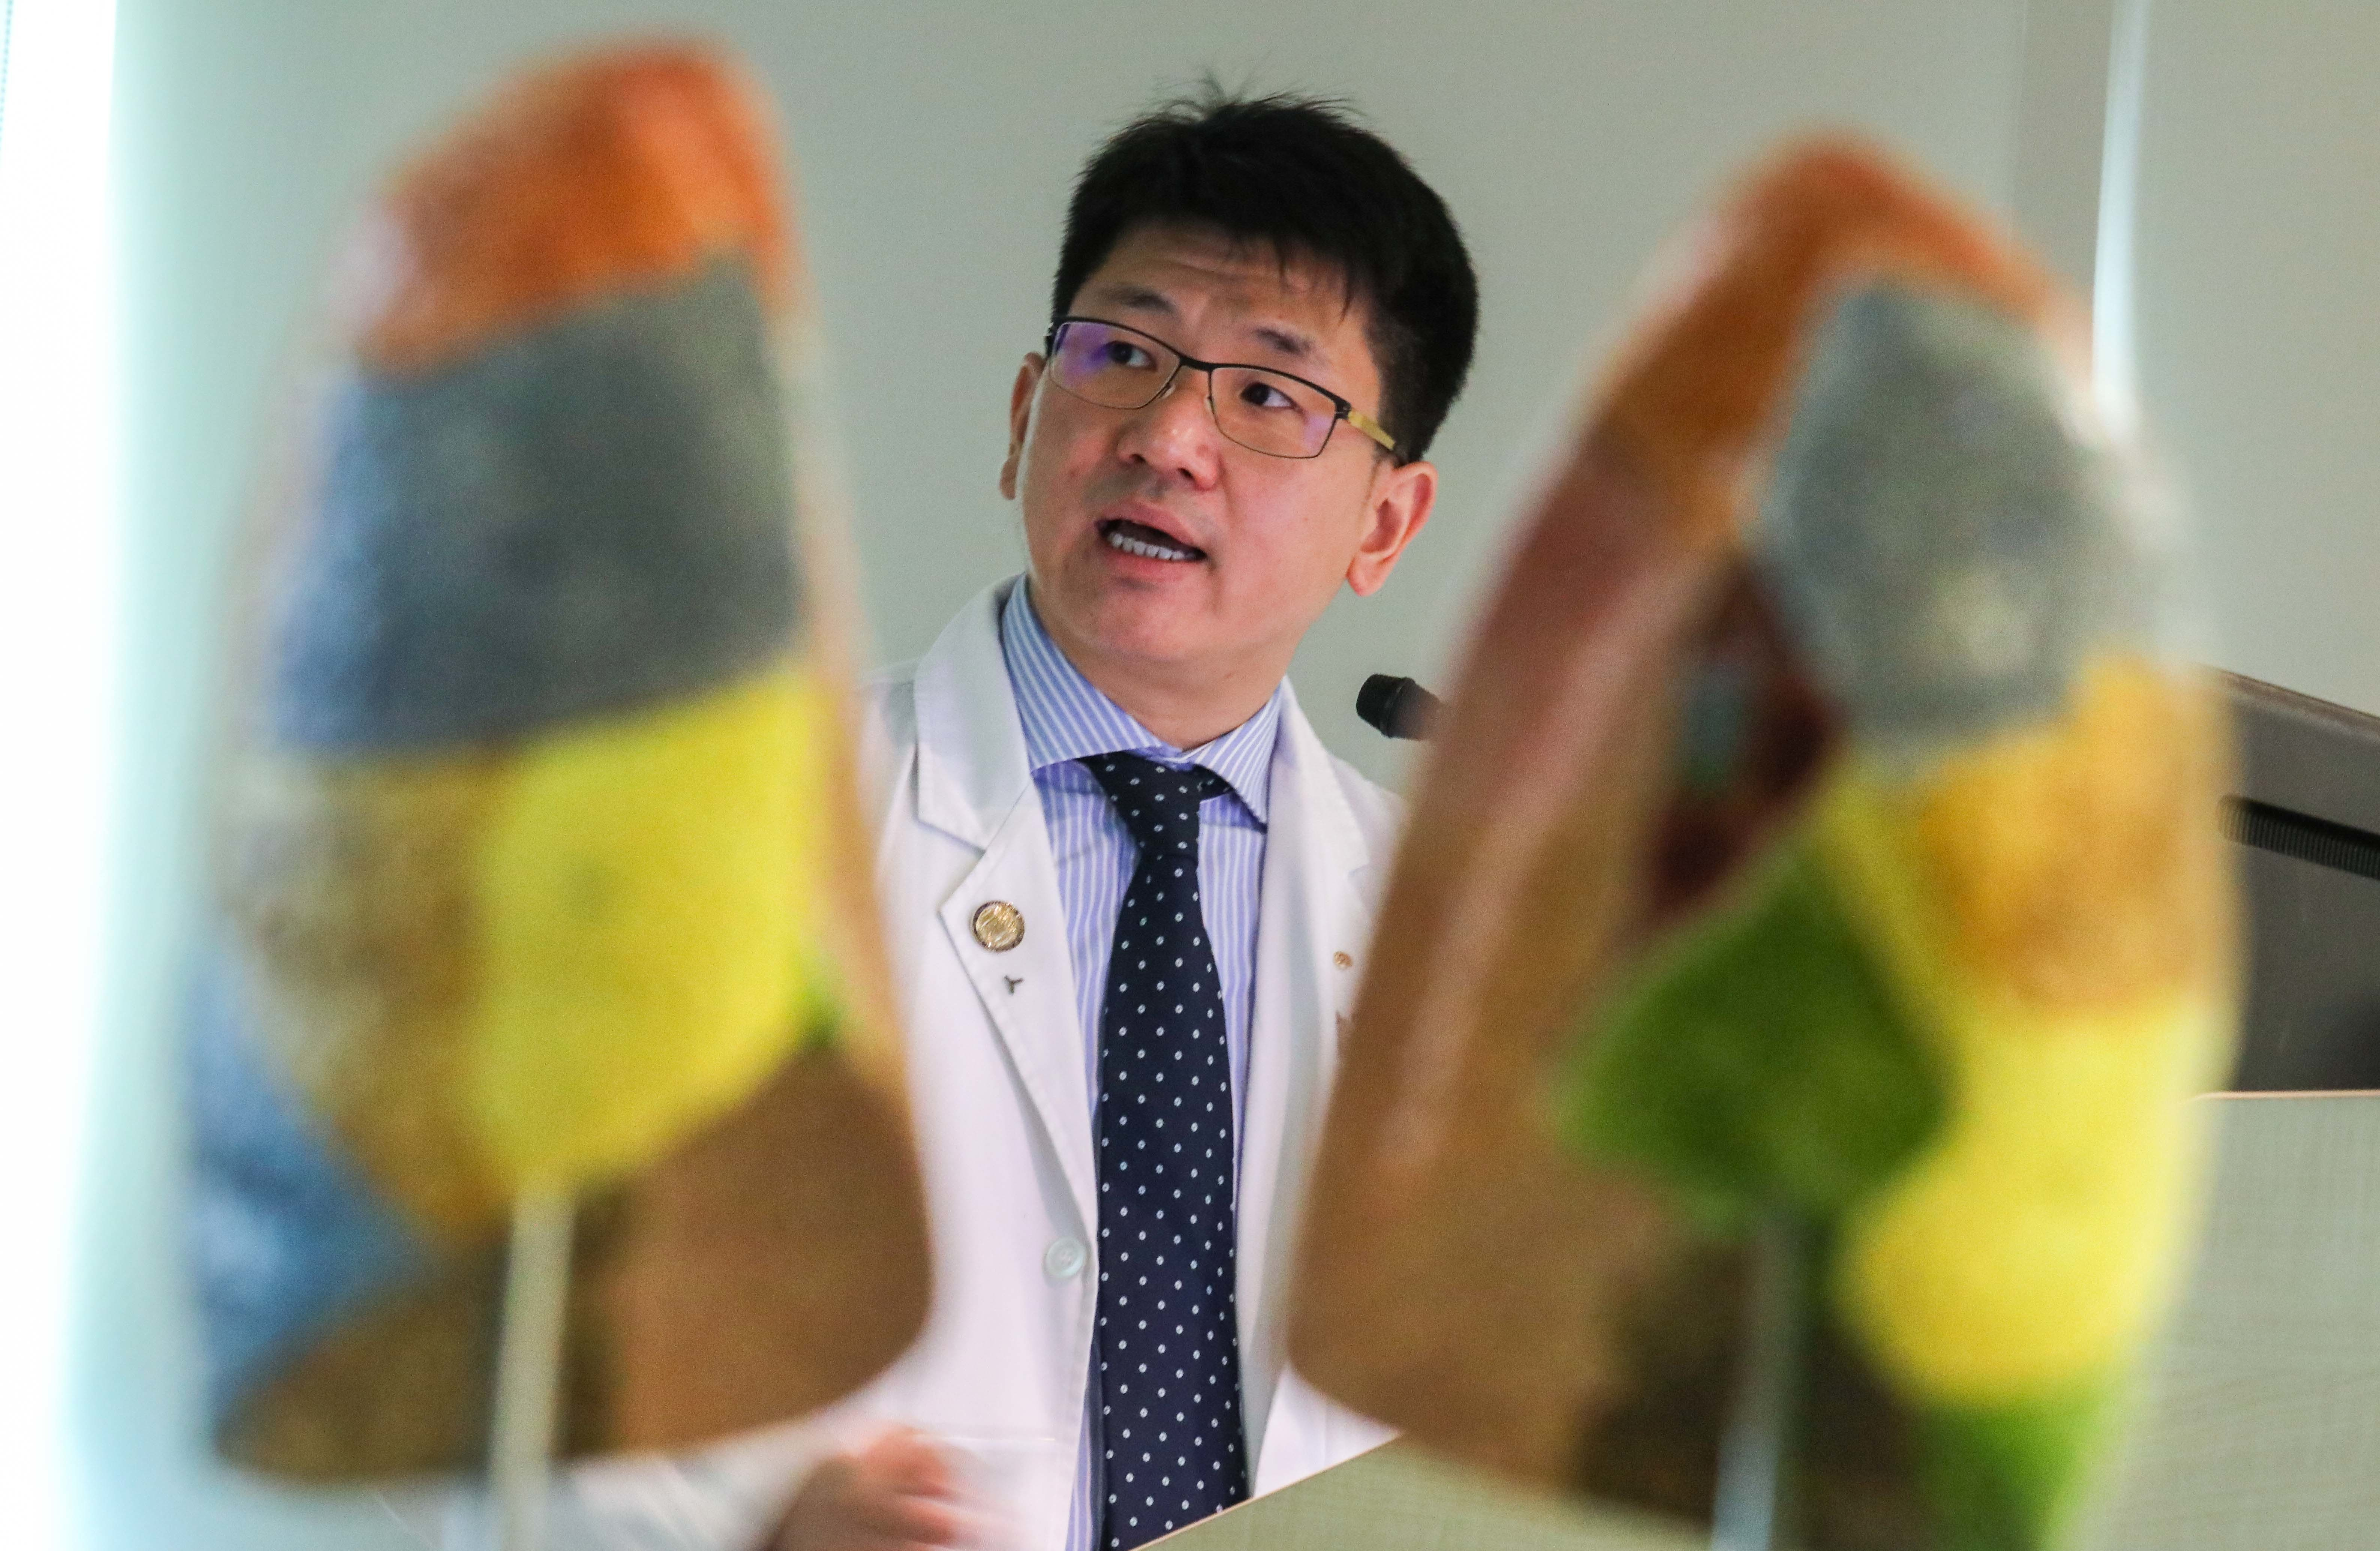 Dr. Calvin NG (left), Associate Professor, Division of Cardiothoracic Surgery, Department of Surgery, Faculty of Medicine, CUHK